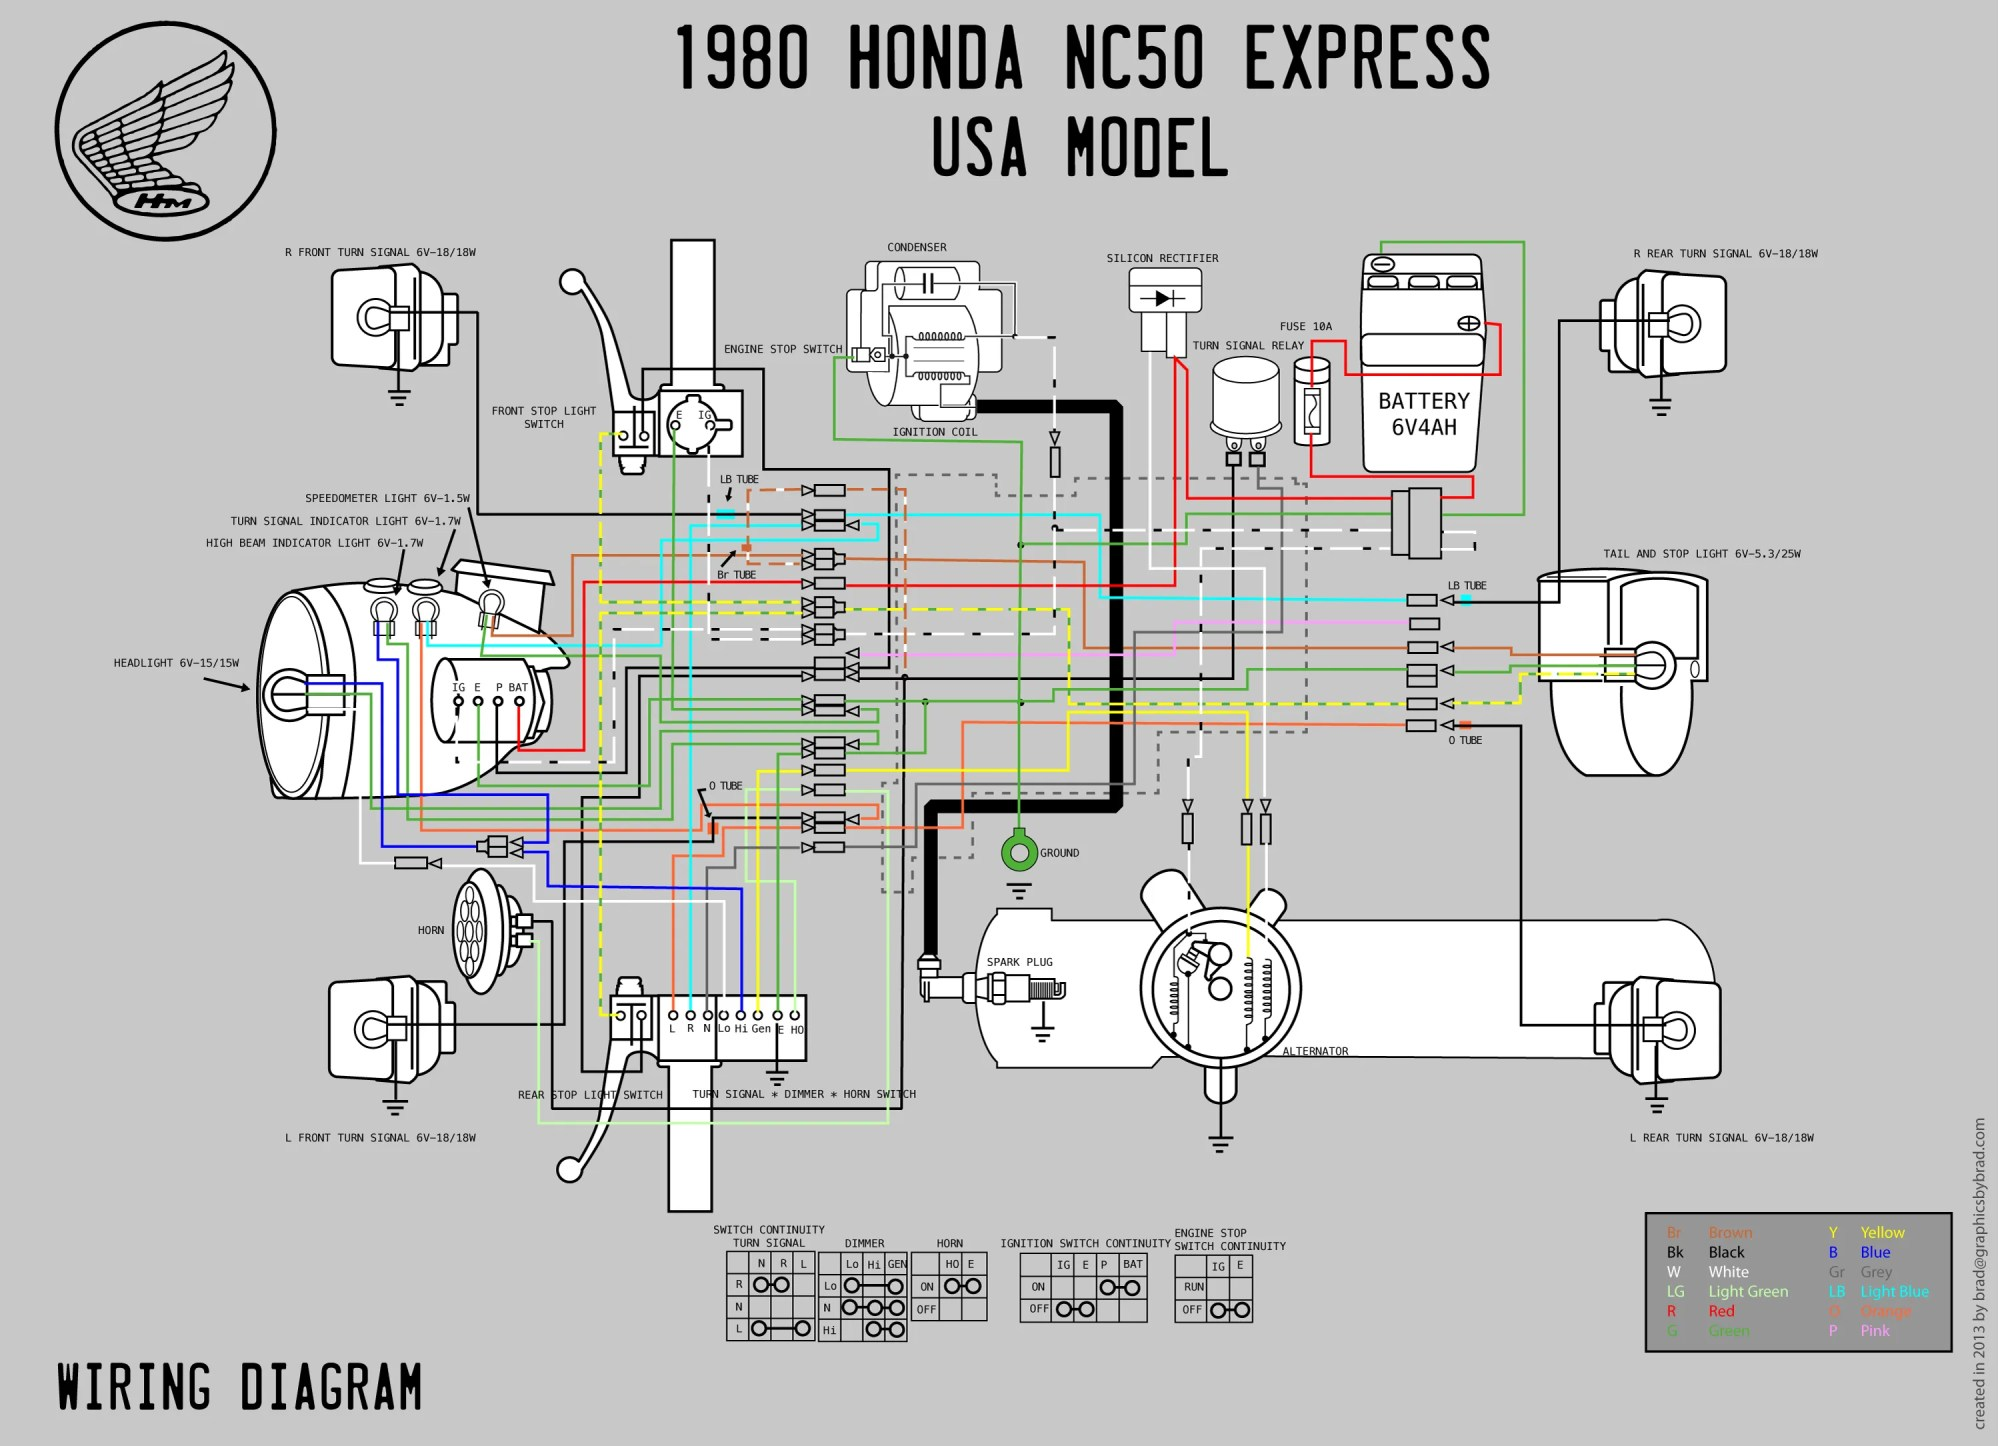 hight resolution of 1982 honda express nc50 wiring diagram home wiring diagram 1980 honda nc50 wiring diagram moped wiki